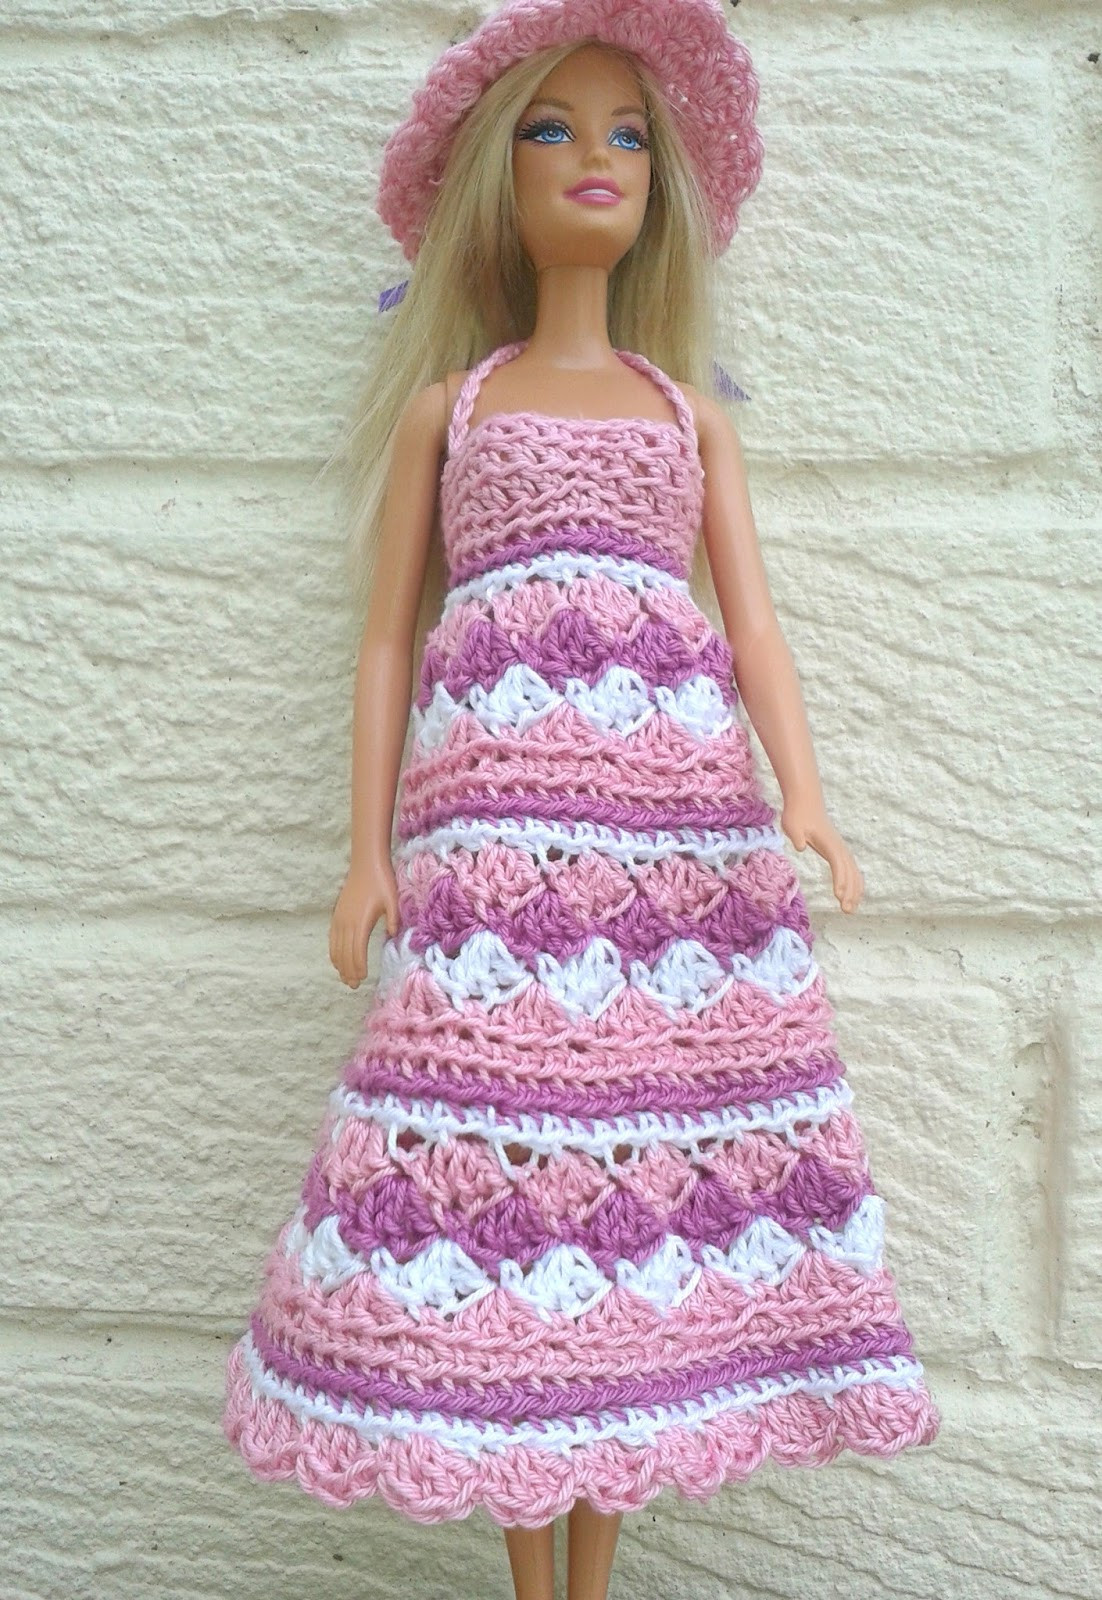 Elegant Linmary Knits Barbie Crochet Summer Dress and Hat Barbie Doll Patterns Of Superb 40 Pics Barbie Doll Patterns